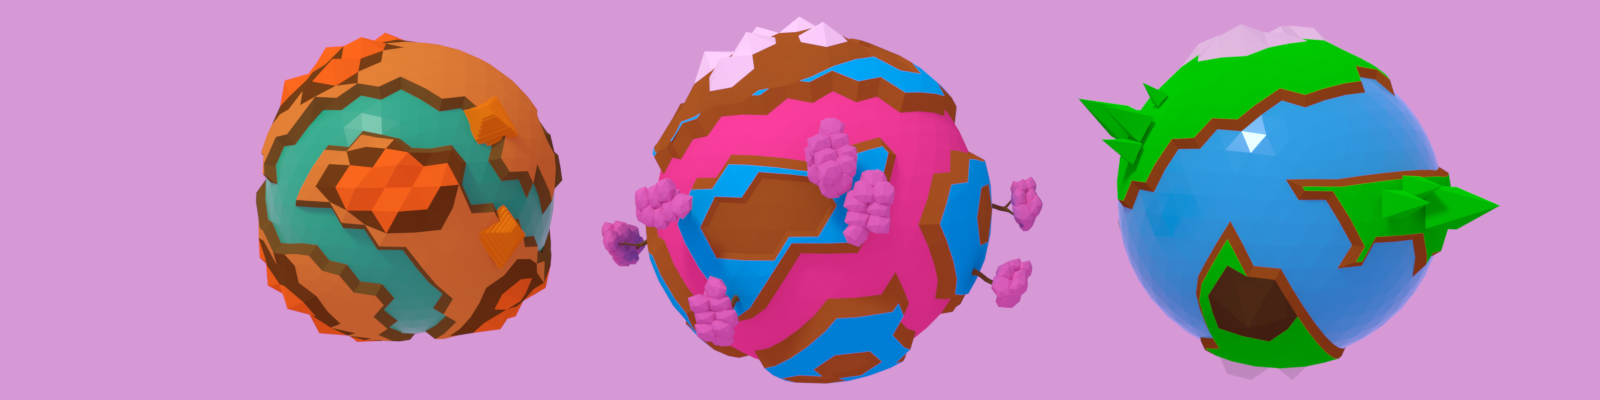 Stylized low poly planets